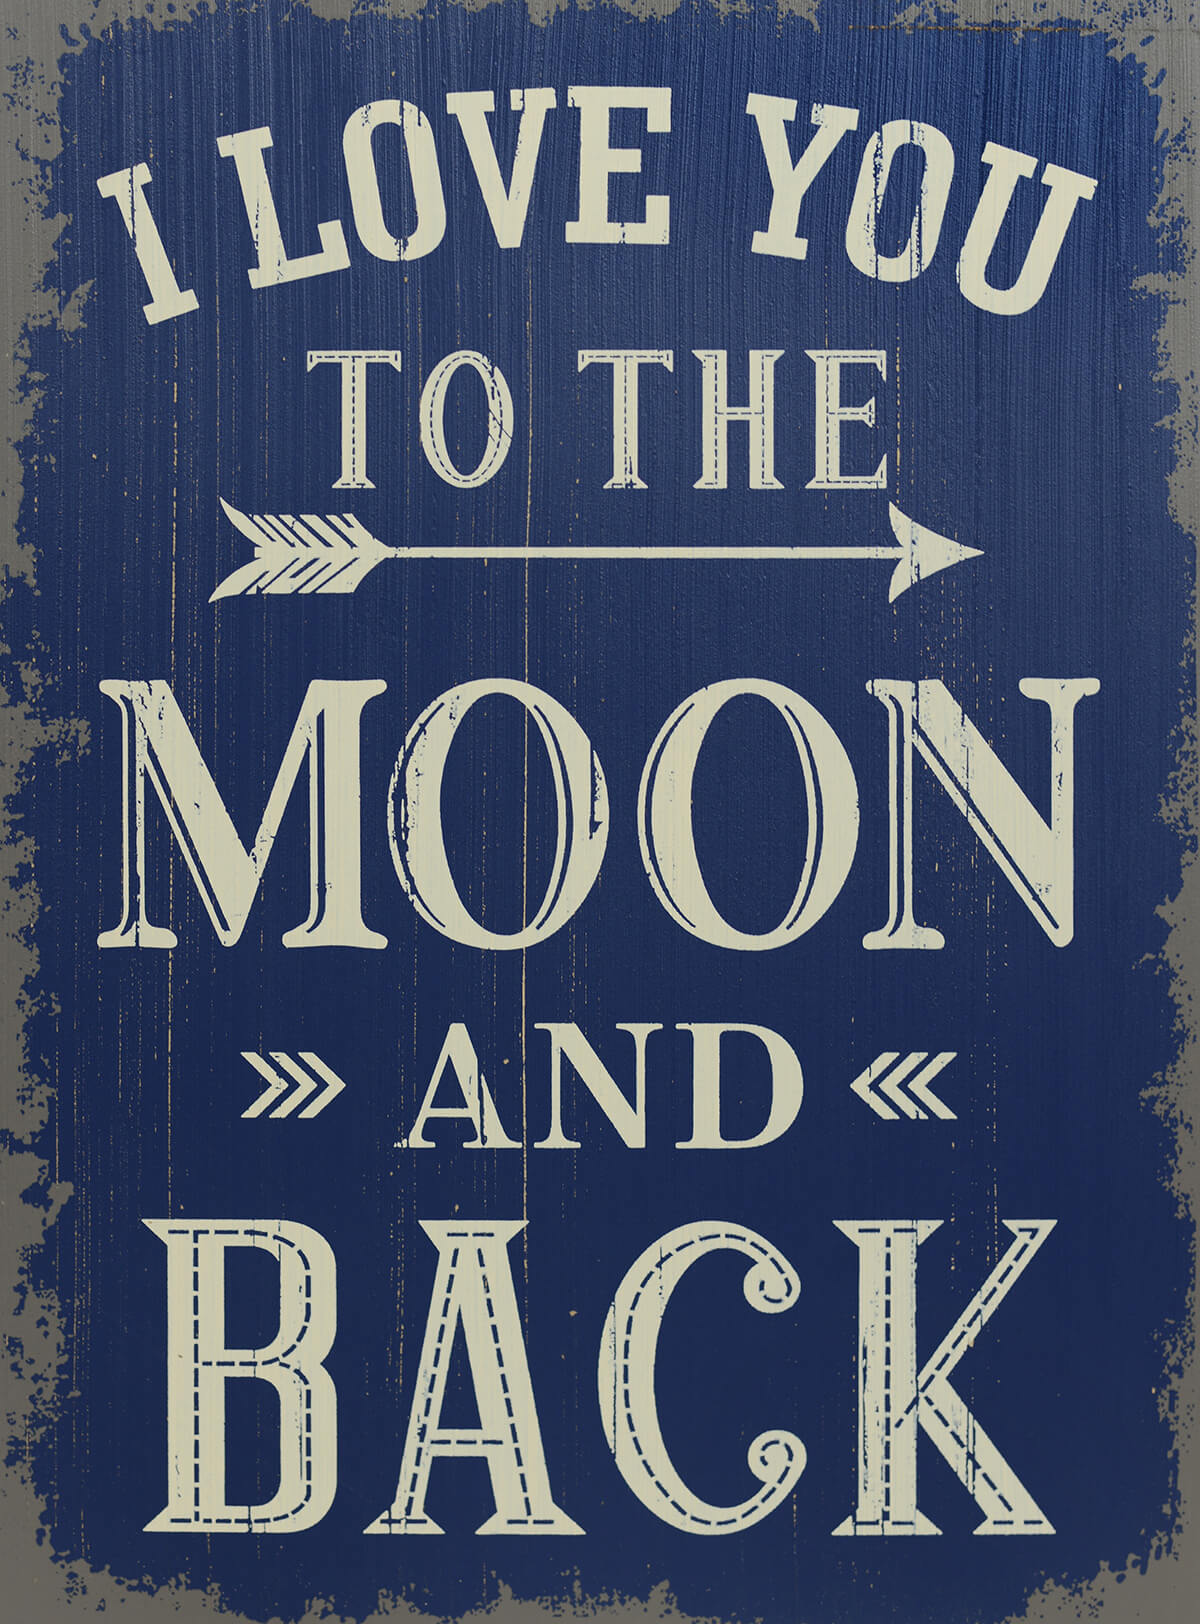 Blue And White Living Room I Love You To The Moon And Back 19 Quot Sign Saveoncrafts